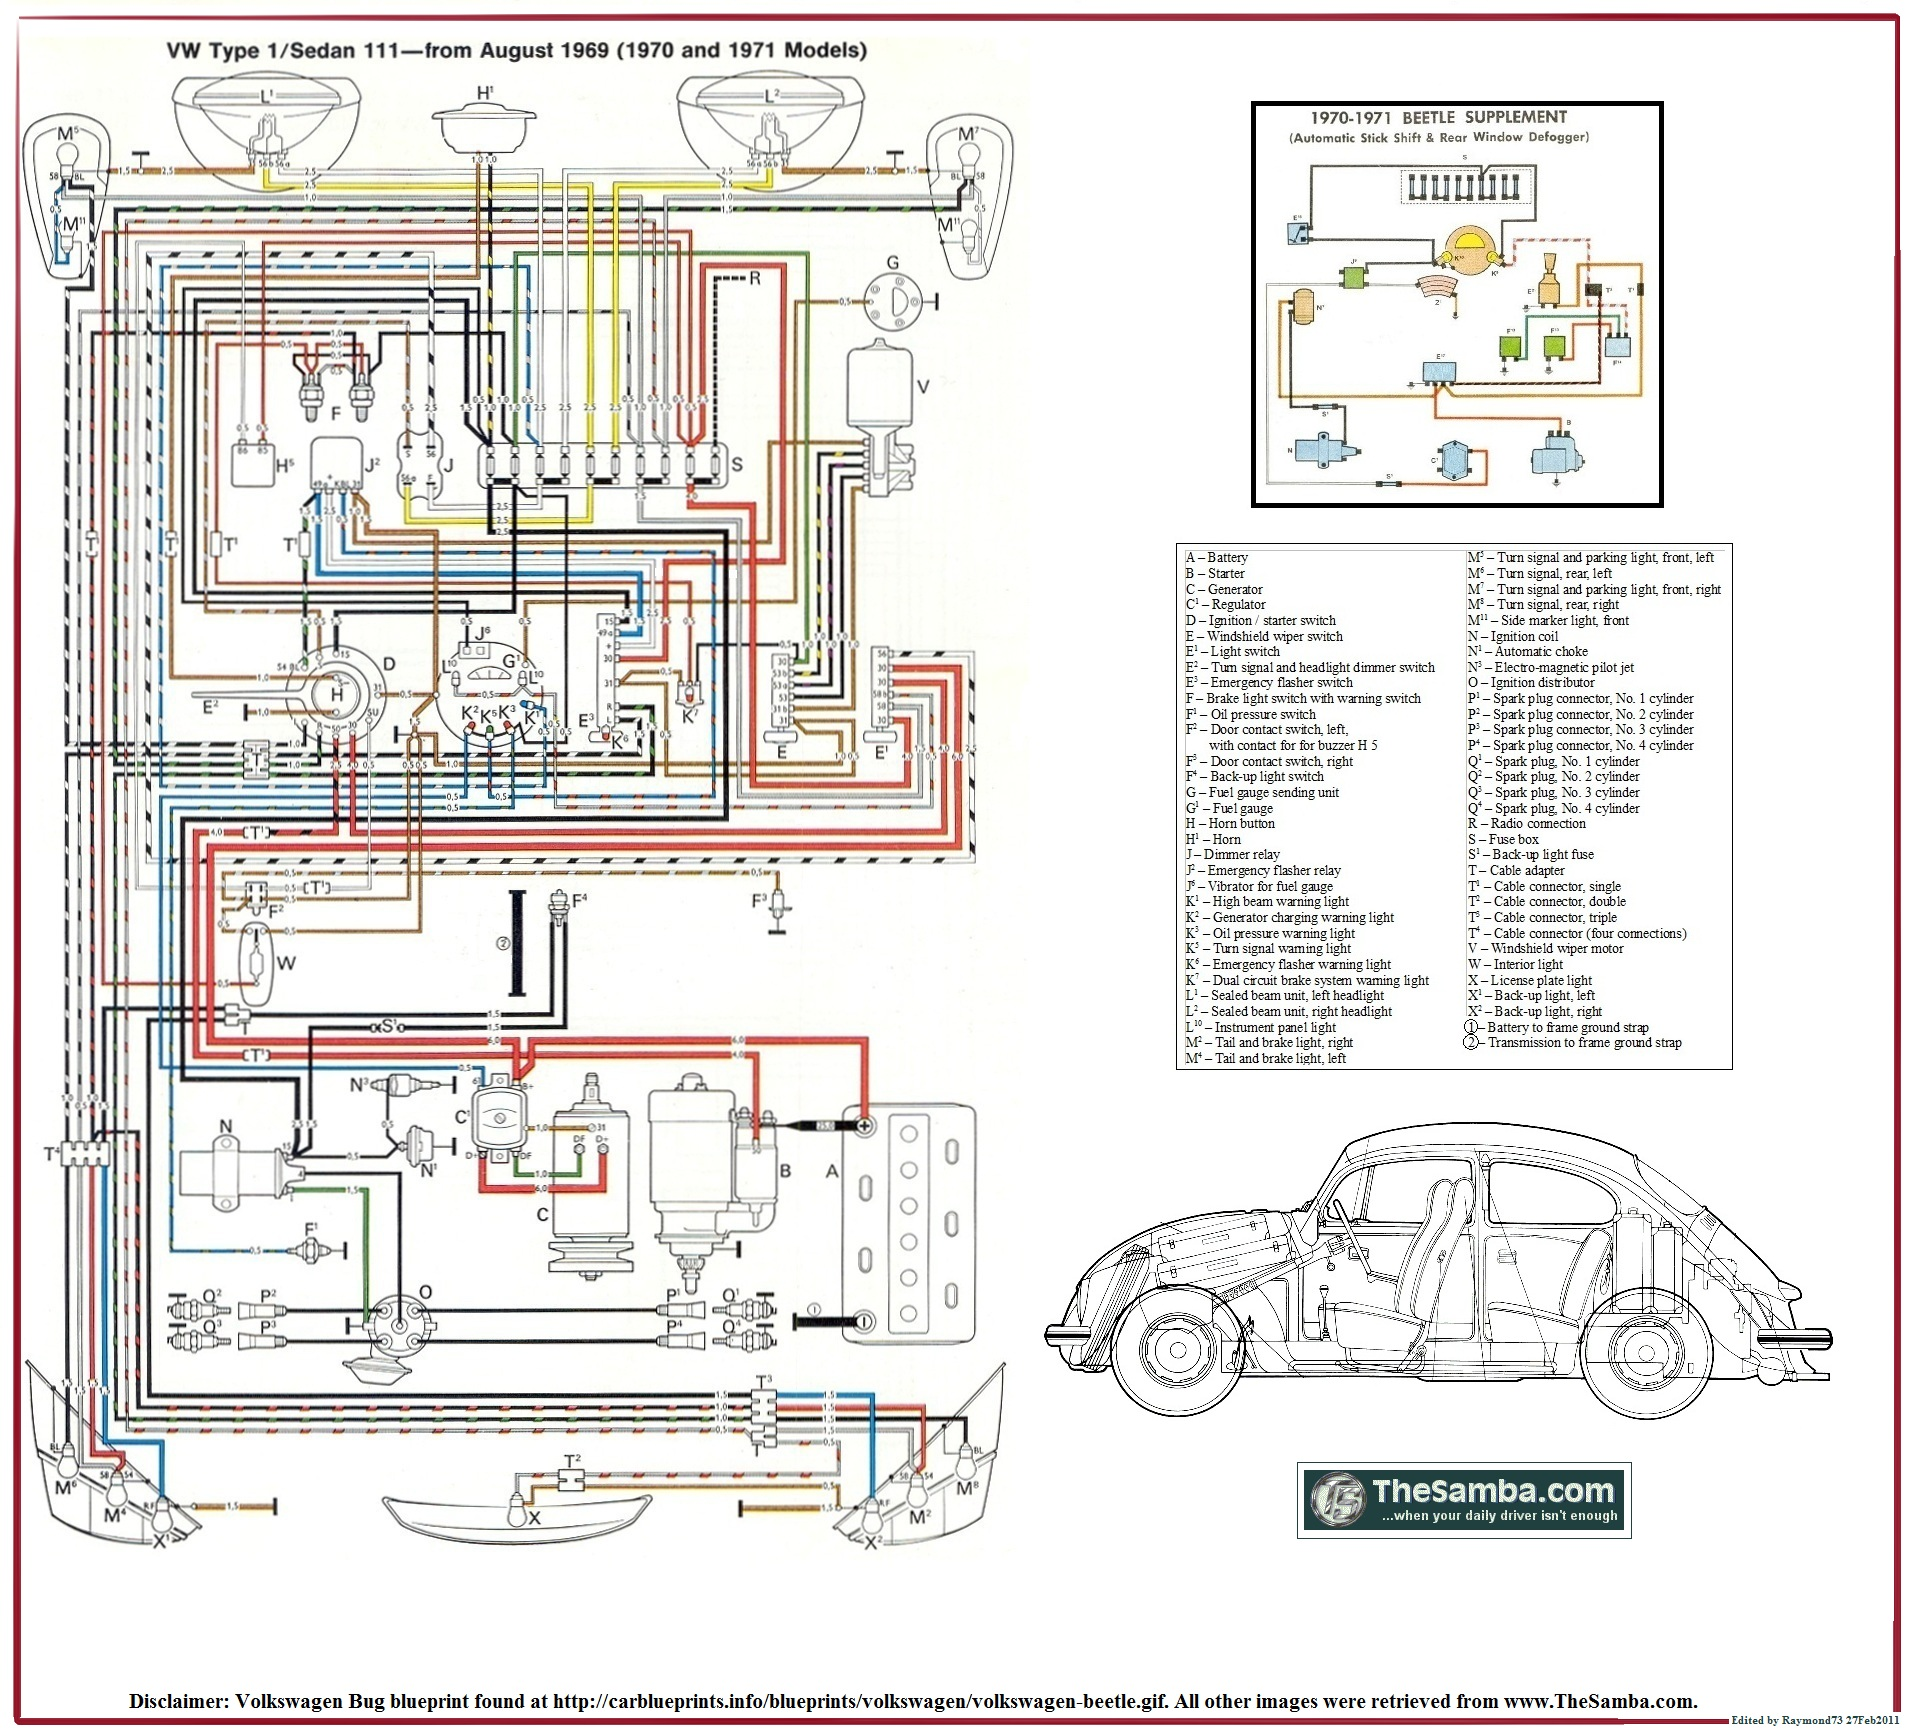 1970_VW_Type_1_Poster 1970 beetle wiring schematic yamaha motorcycle wiring diagrams 1970 vw beetle wiring diagram at bayanpartner.co